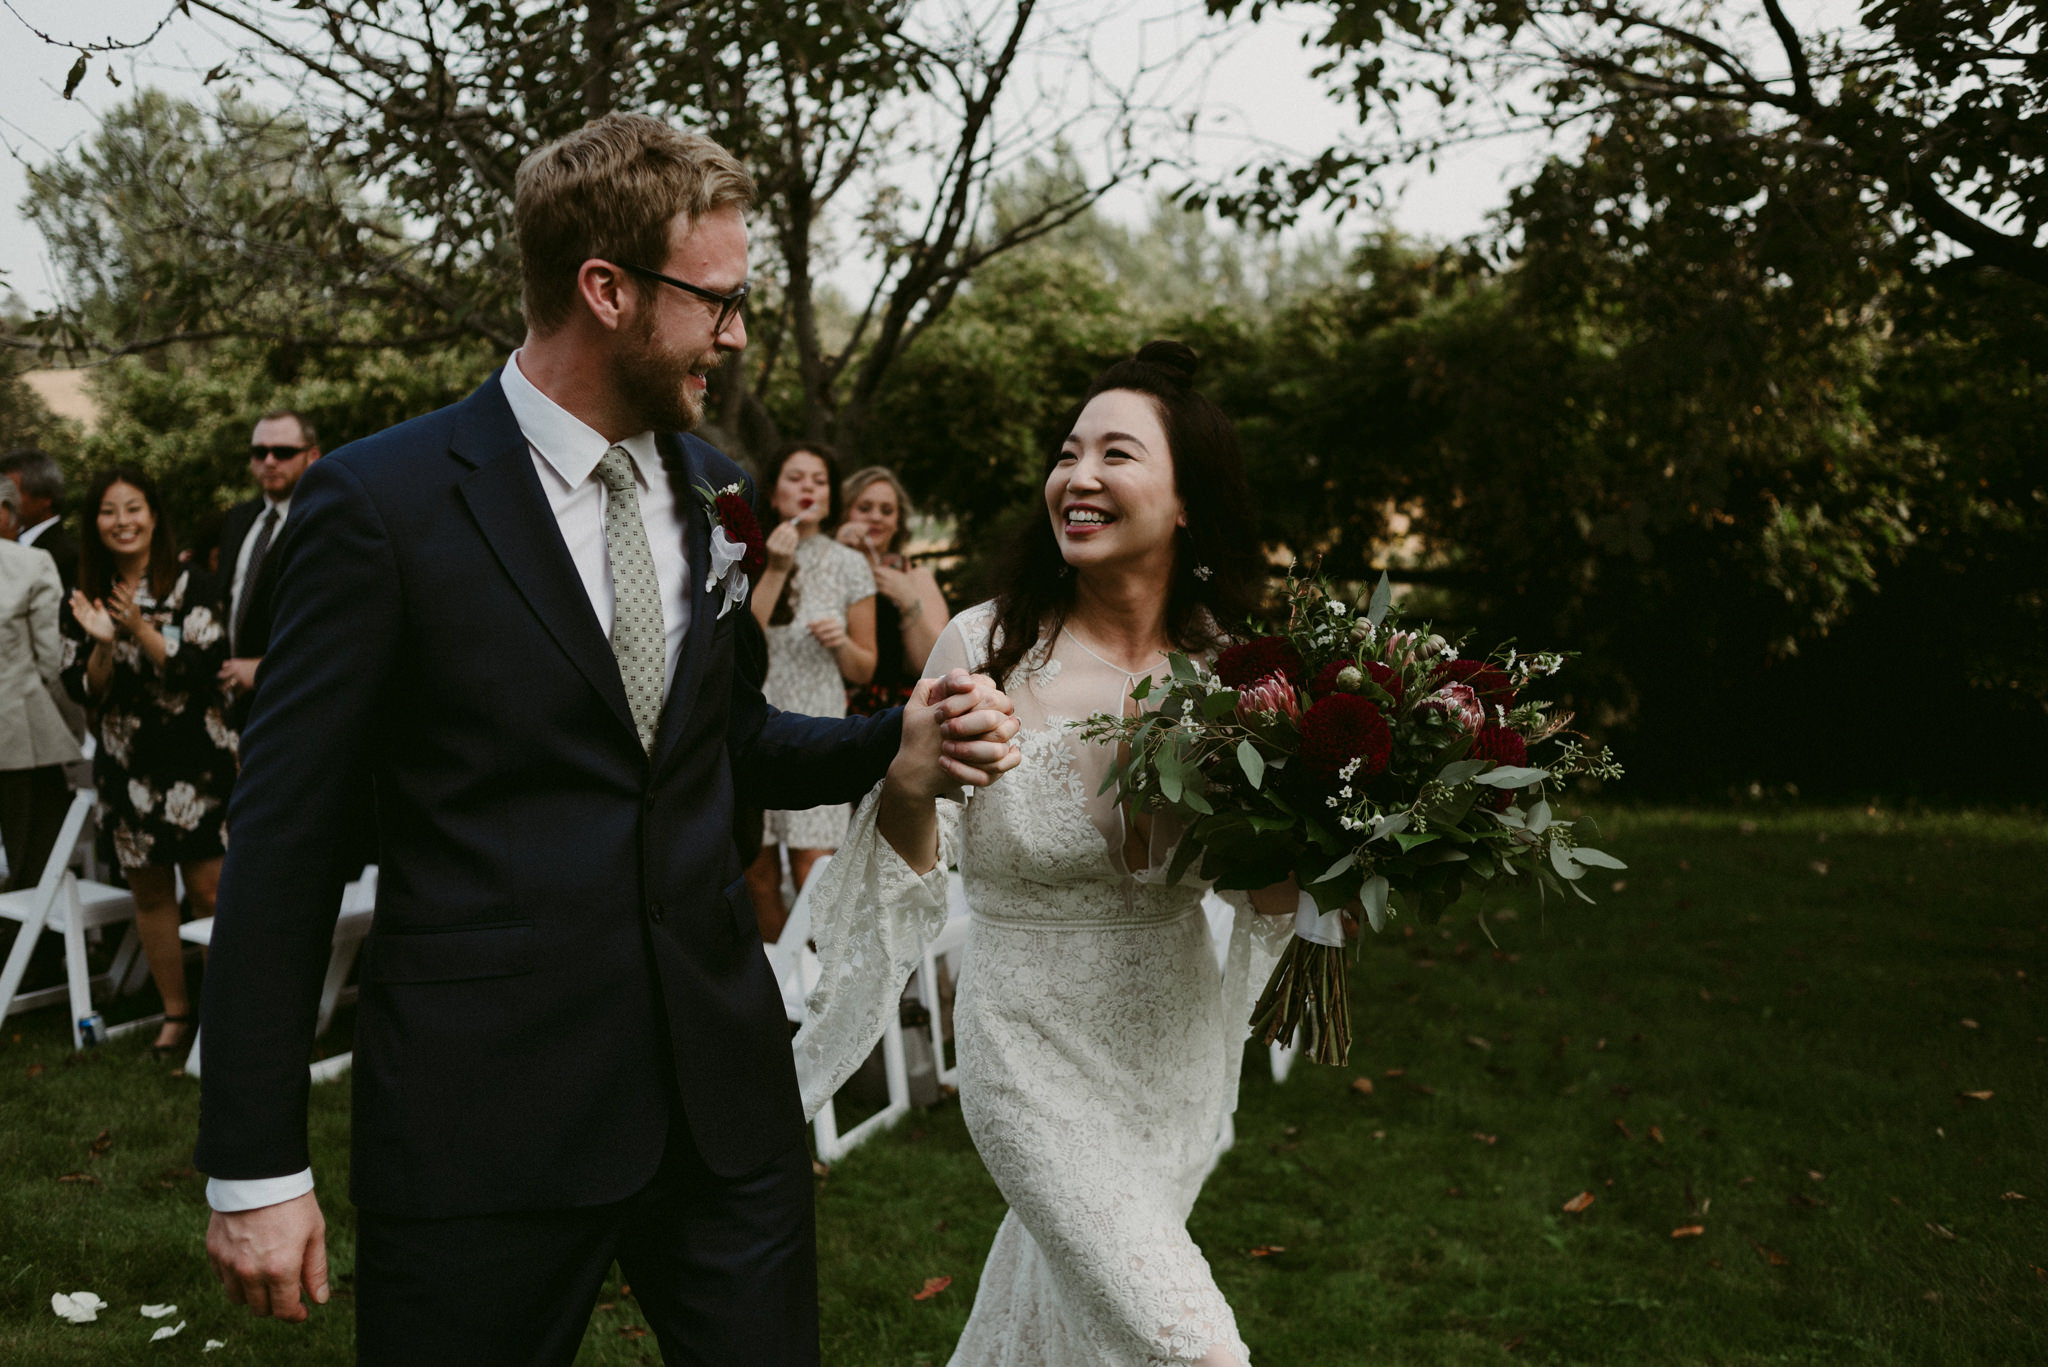 bride smiling at groom walking down aisle after outdoor backyard wedding ceremony